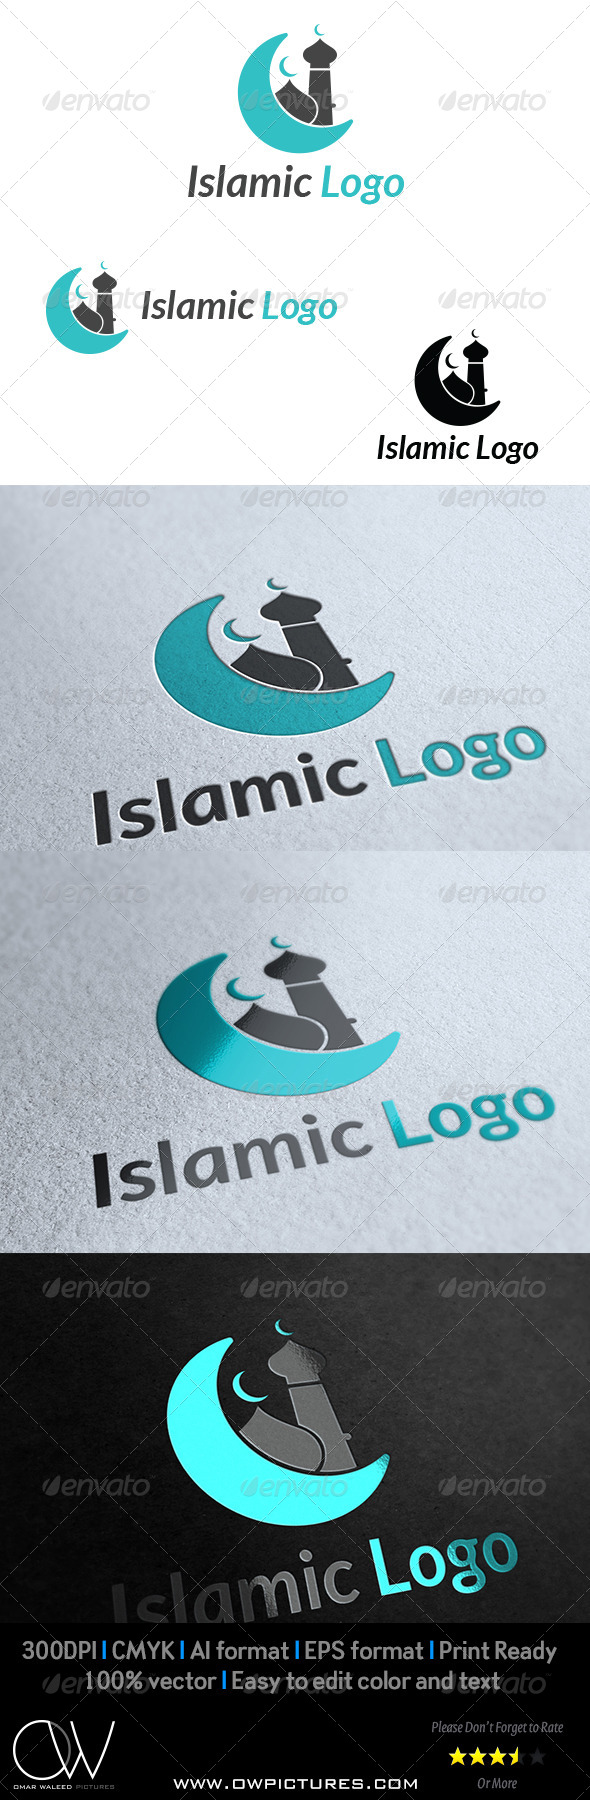 GraphicRiver Islamic Logo 5279929